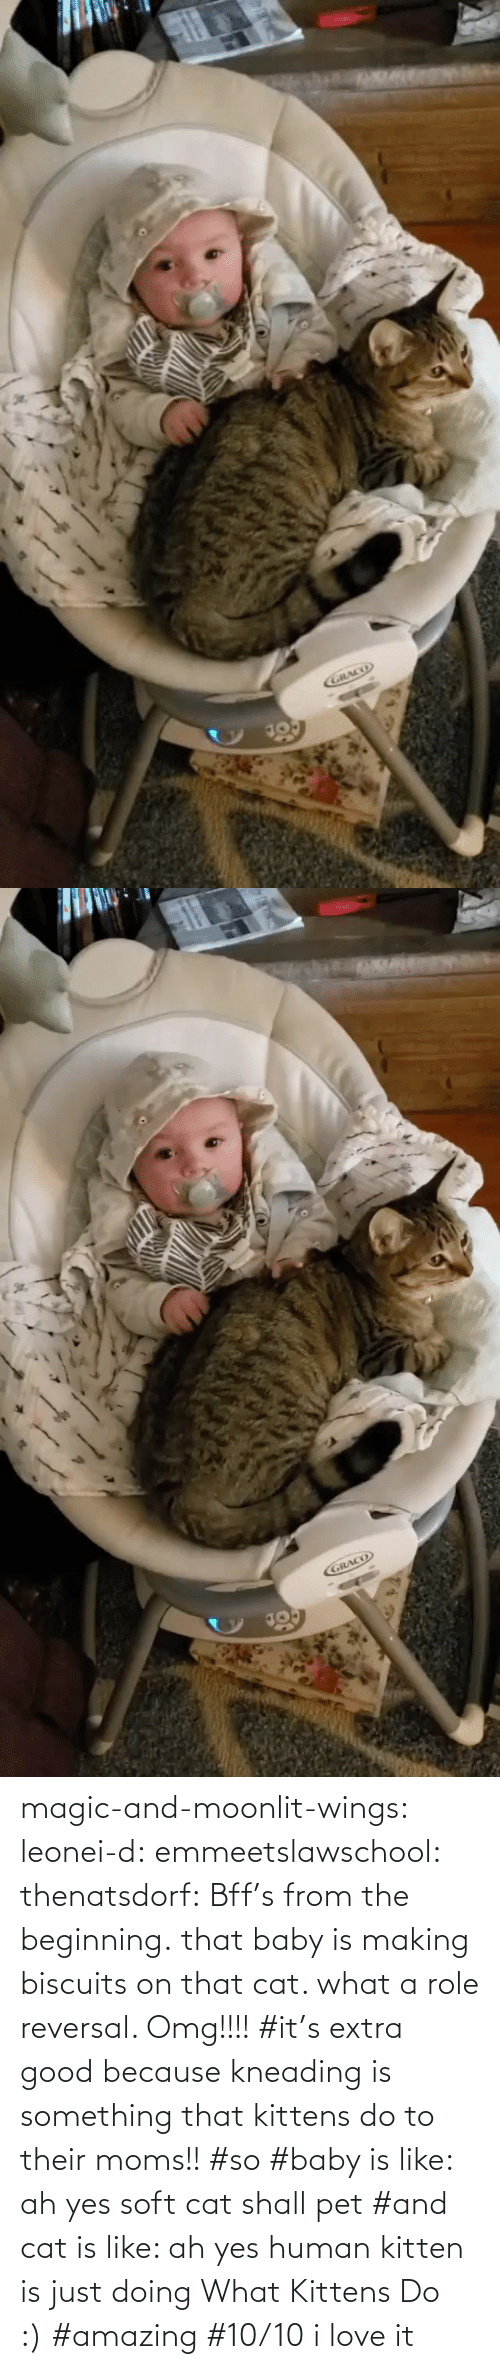 because: magic-and-moonlit-wings: leonei-d:  emmeetslawschool:  thenatsdorf: Bff's from the beginning. that baby is making biscuits on that cat. what a role reversal.    Omg!!!!     #it's extra good because kneading is something that kittens do to their moms!! #so #baby is like: ah yes soft cat shall pet #and cat is like: ah yes human kitten is just doing What Kittens Do :) #amazing #10/10 i love it